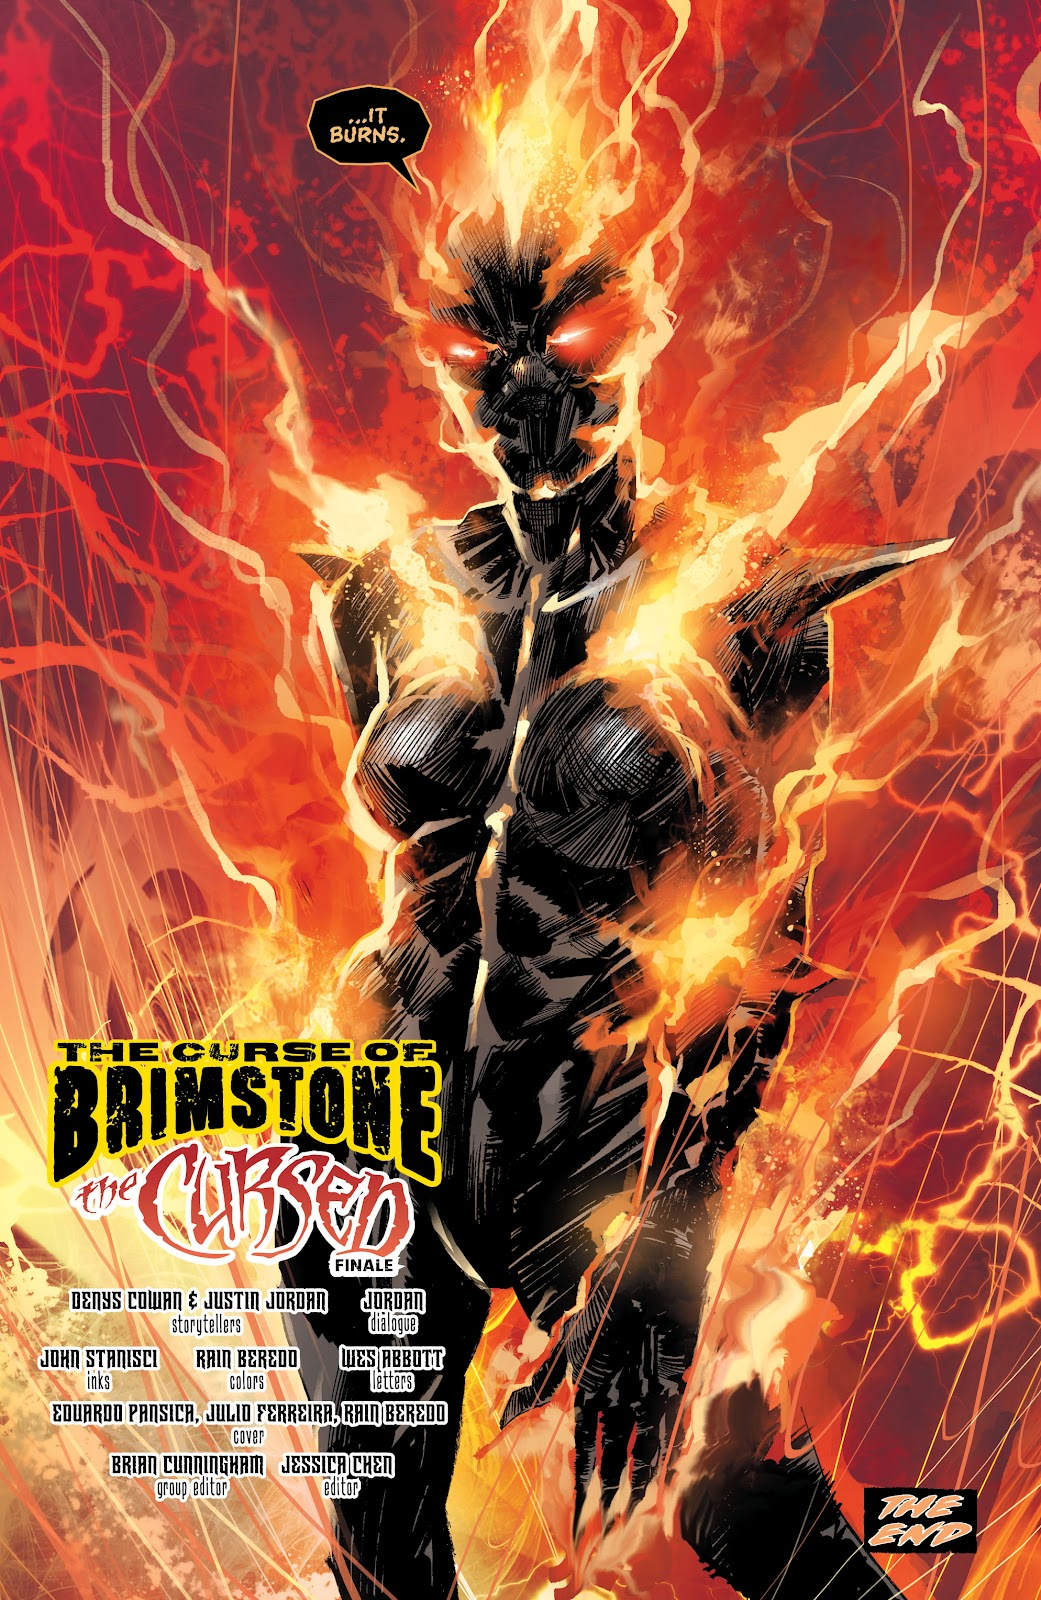 Read online The Curse of Brimstone: Ashes comic -  Issue # TPB (Part 2) - 73